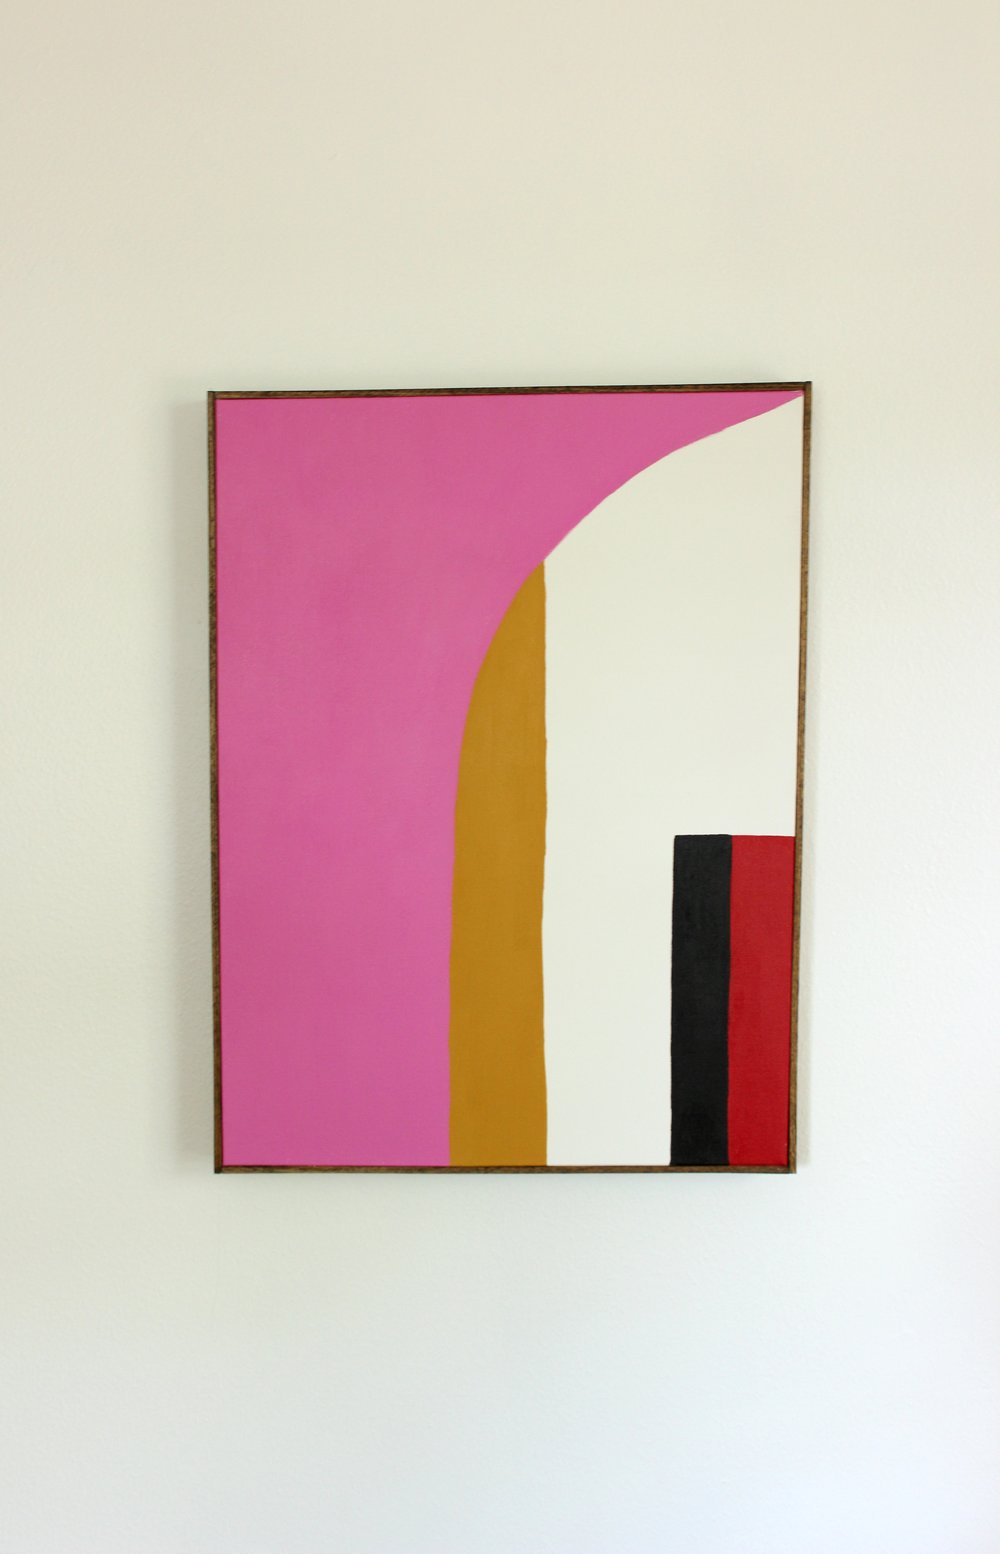 Untitled, 24 x 18 inches, acrylic on canvas, framed